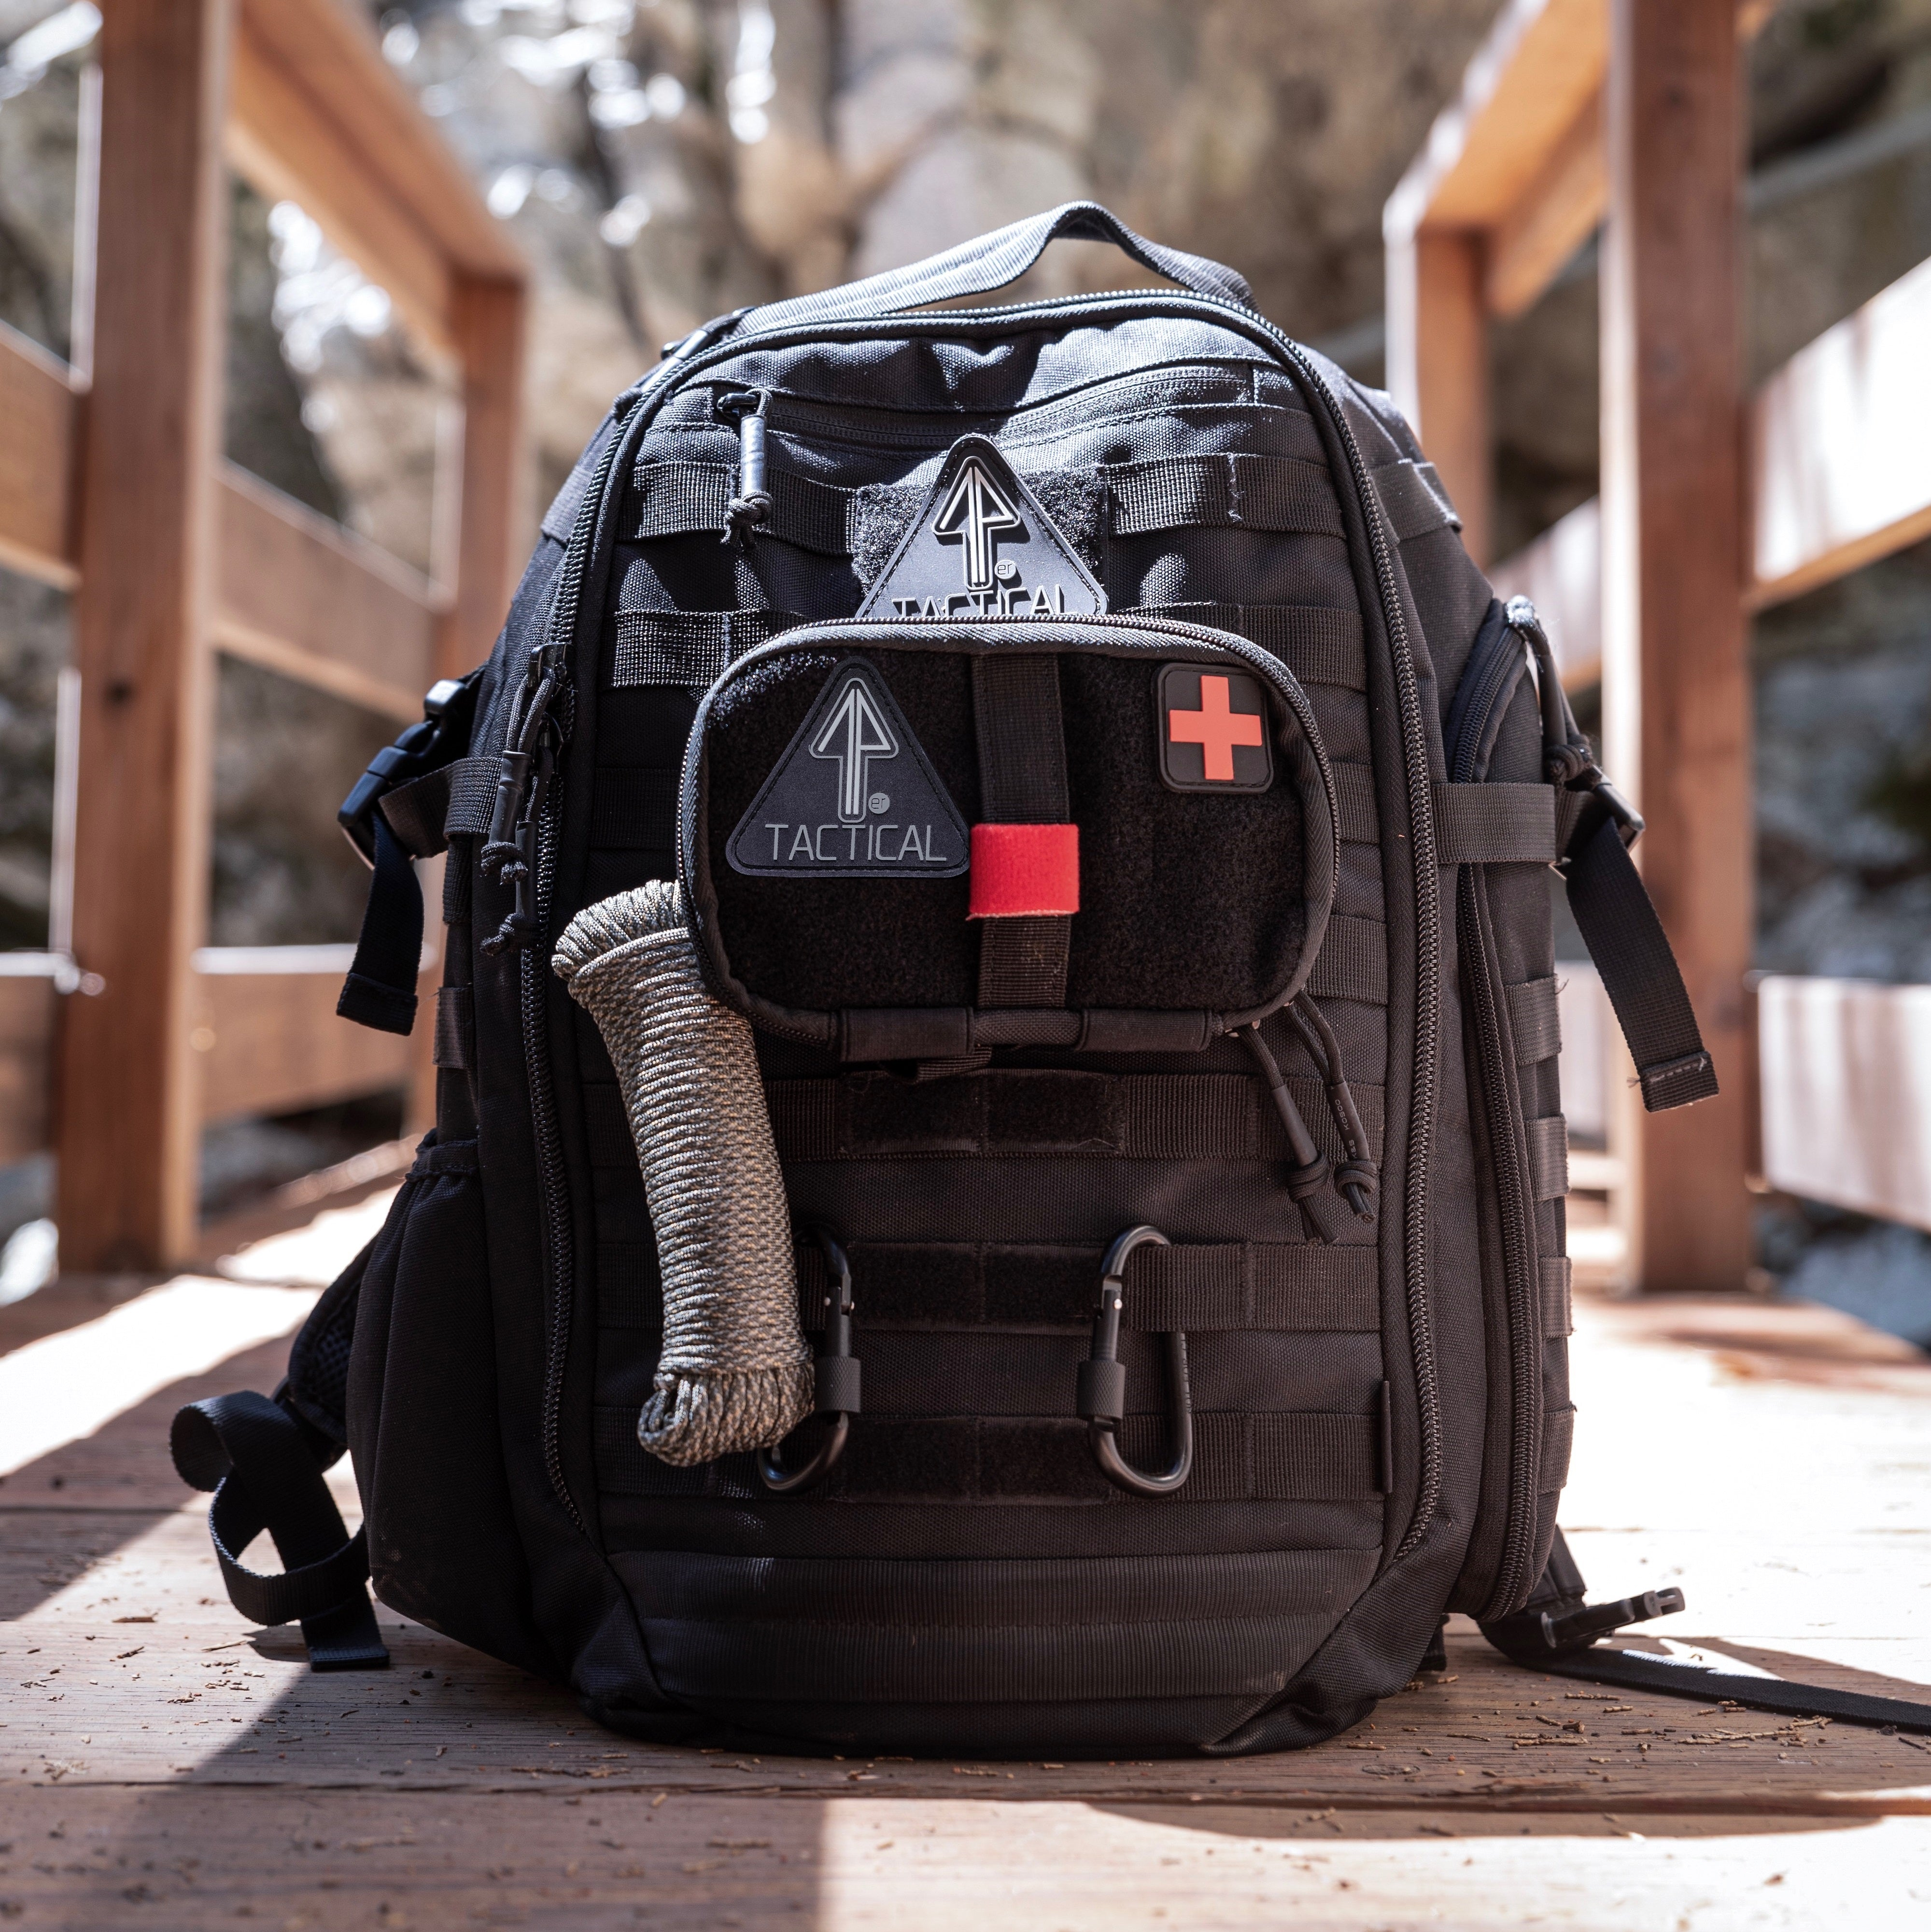 14er Tactical Backpack with IFAK and molle accessories